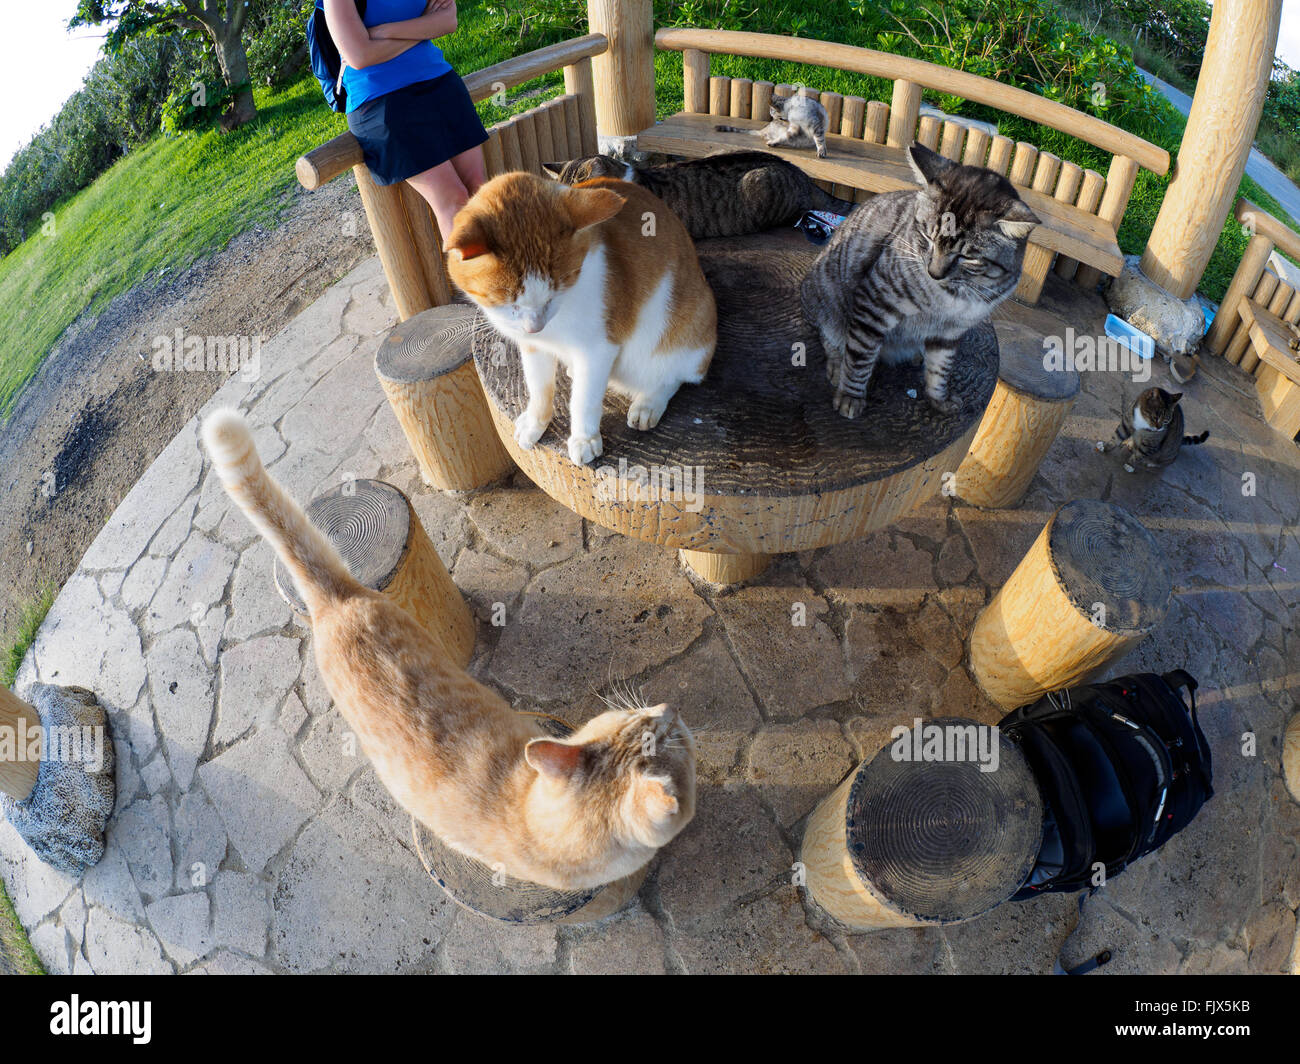 High Angle View Of Cats And Person At Gazebo - Stock Image